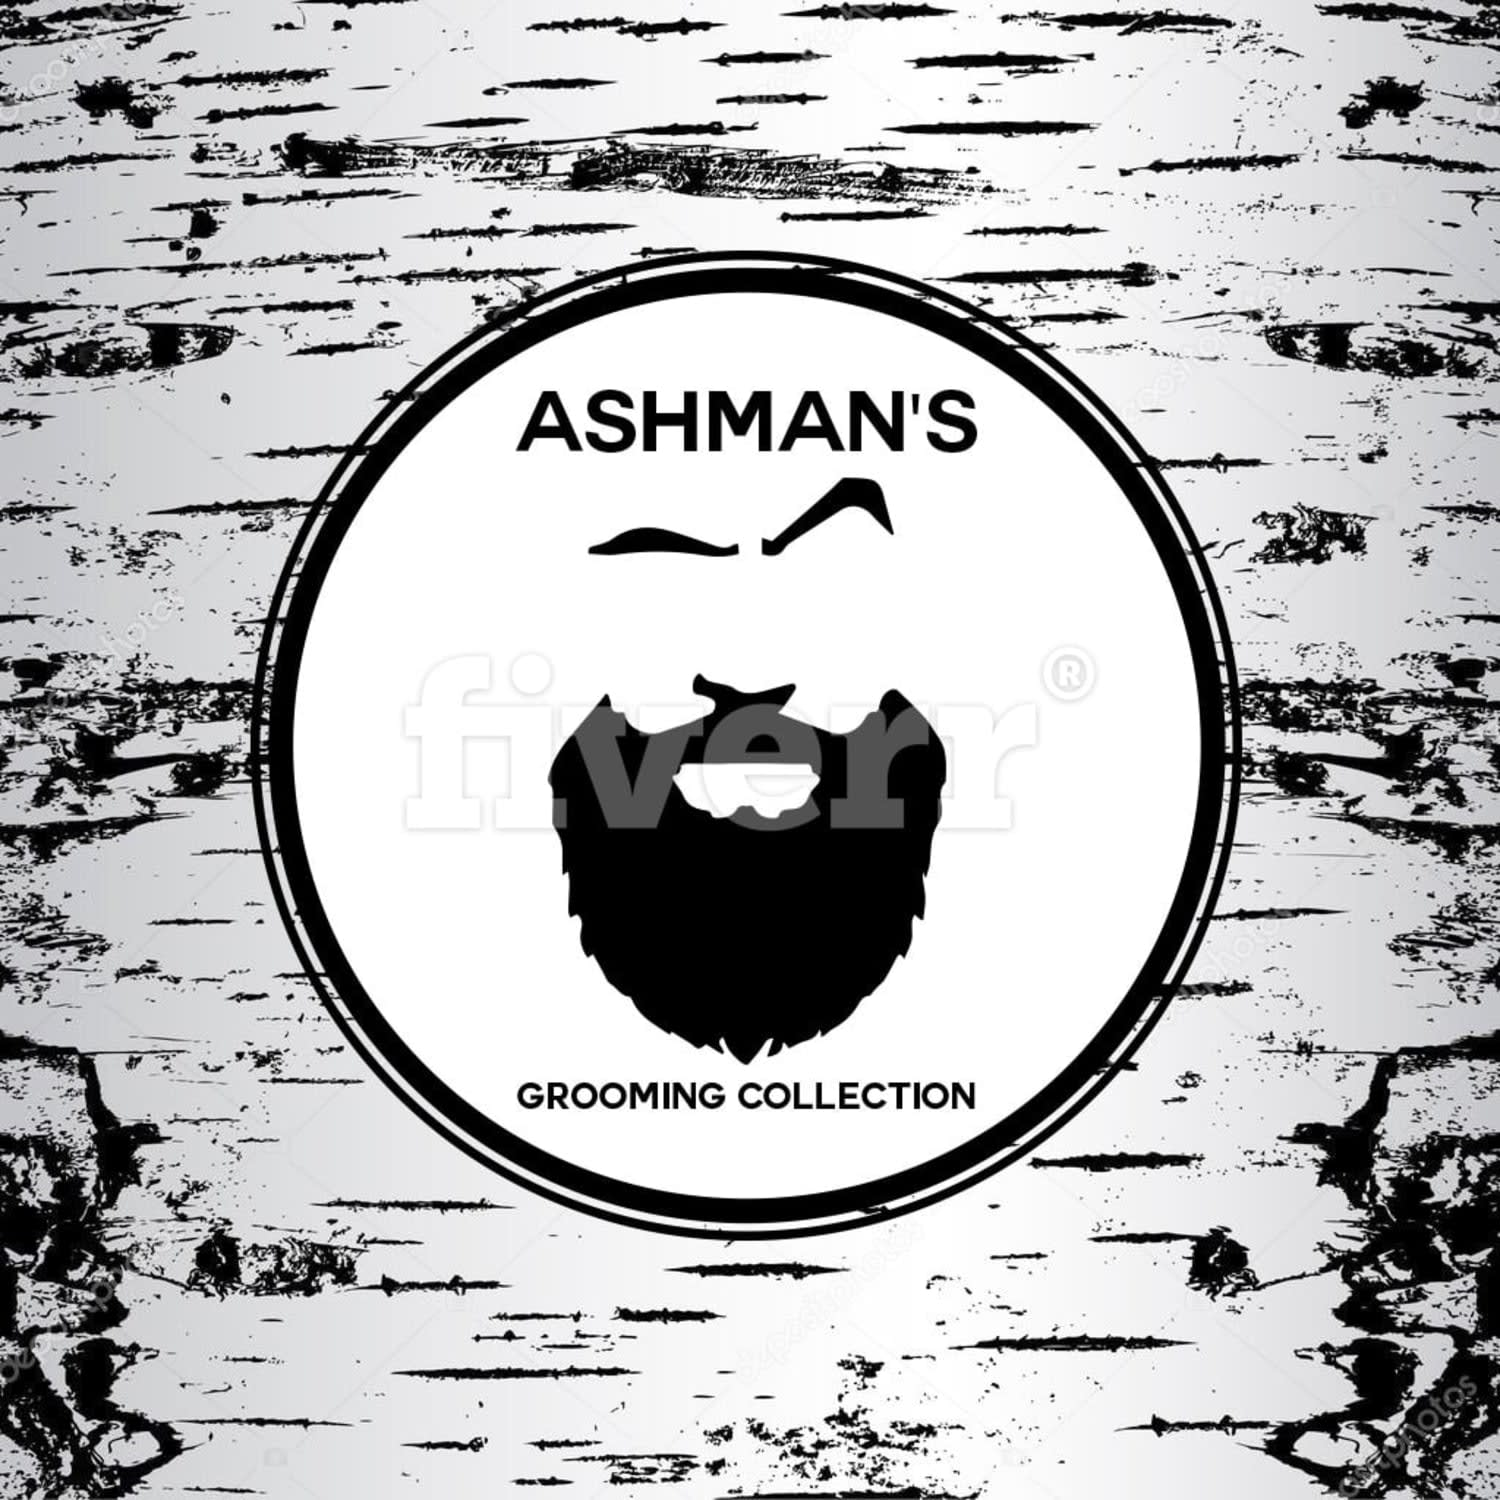 Ashman's Grooming Collection